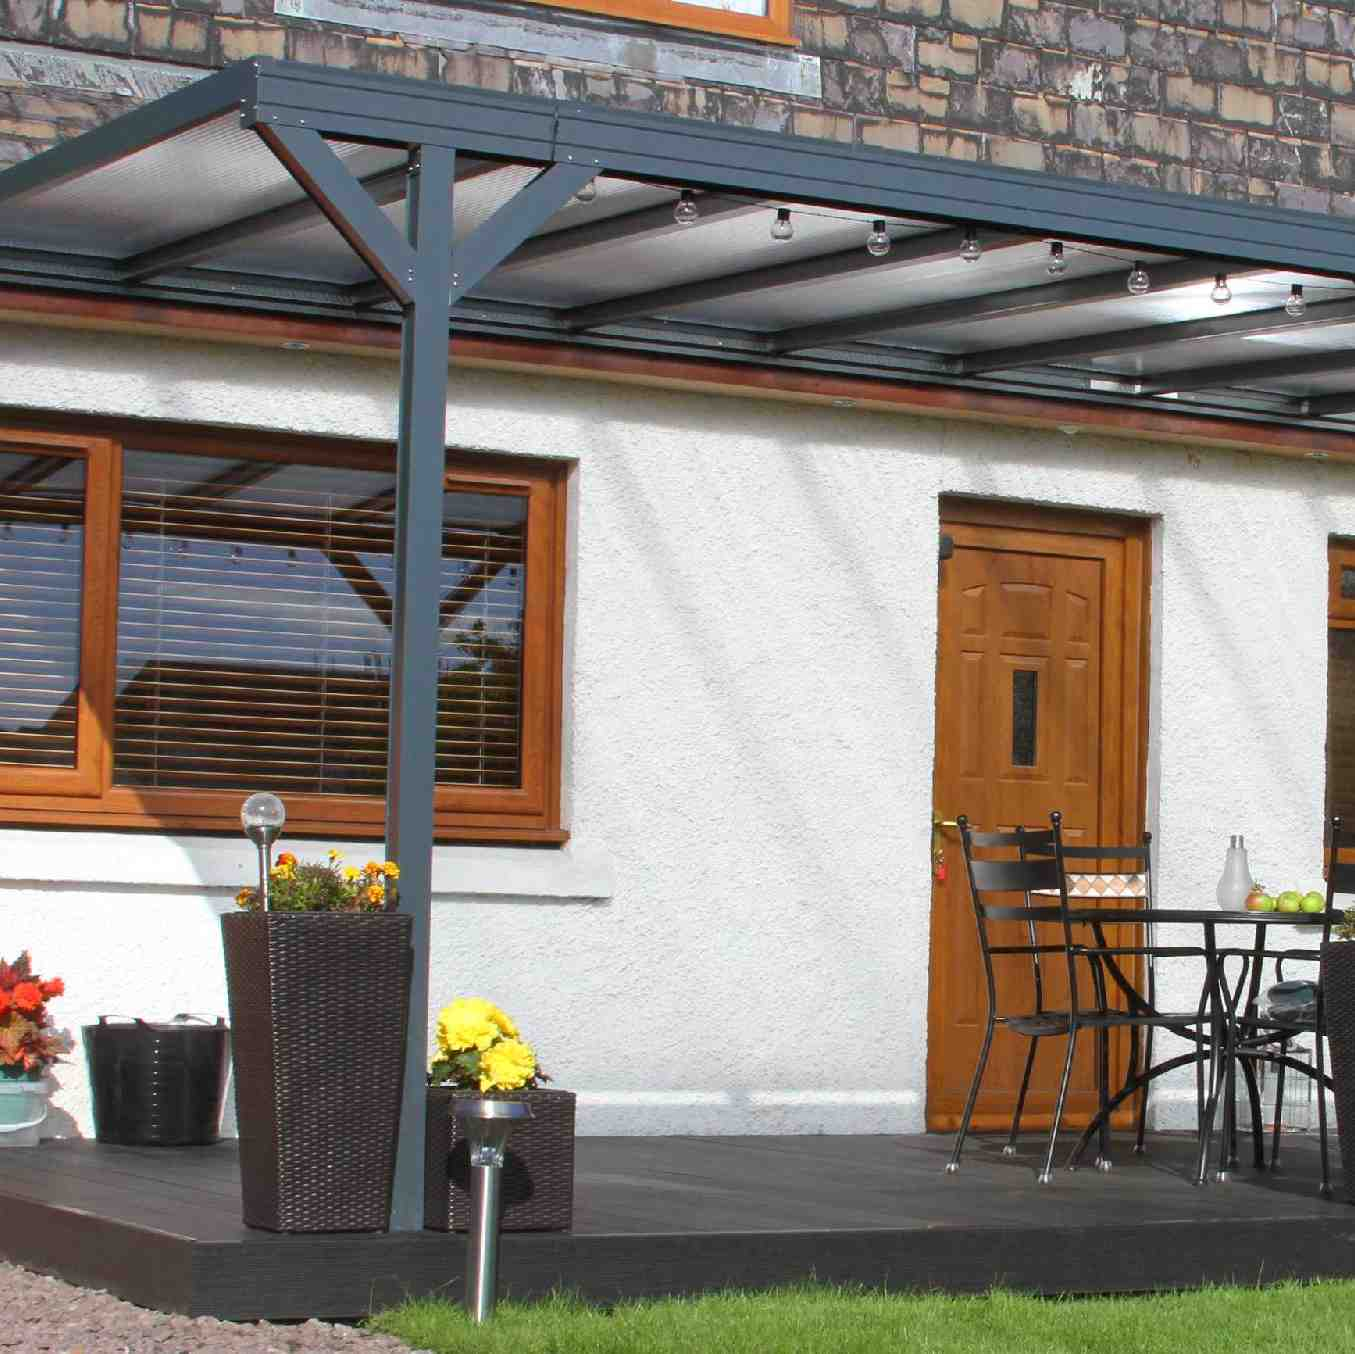 Omega Verandah, Anthracite Grey, 16mm Polycarbonate Glazing - 6.0m (W) x 3.0m (P), (3) Supporting Posts